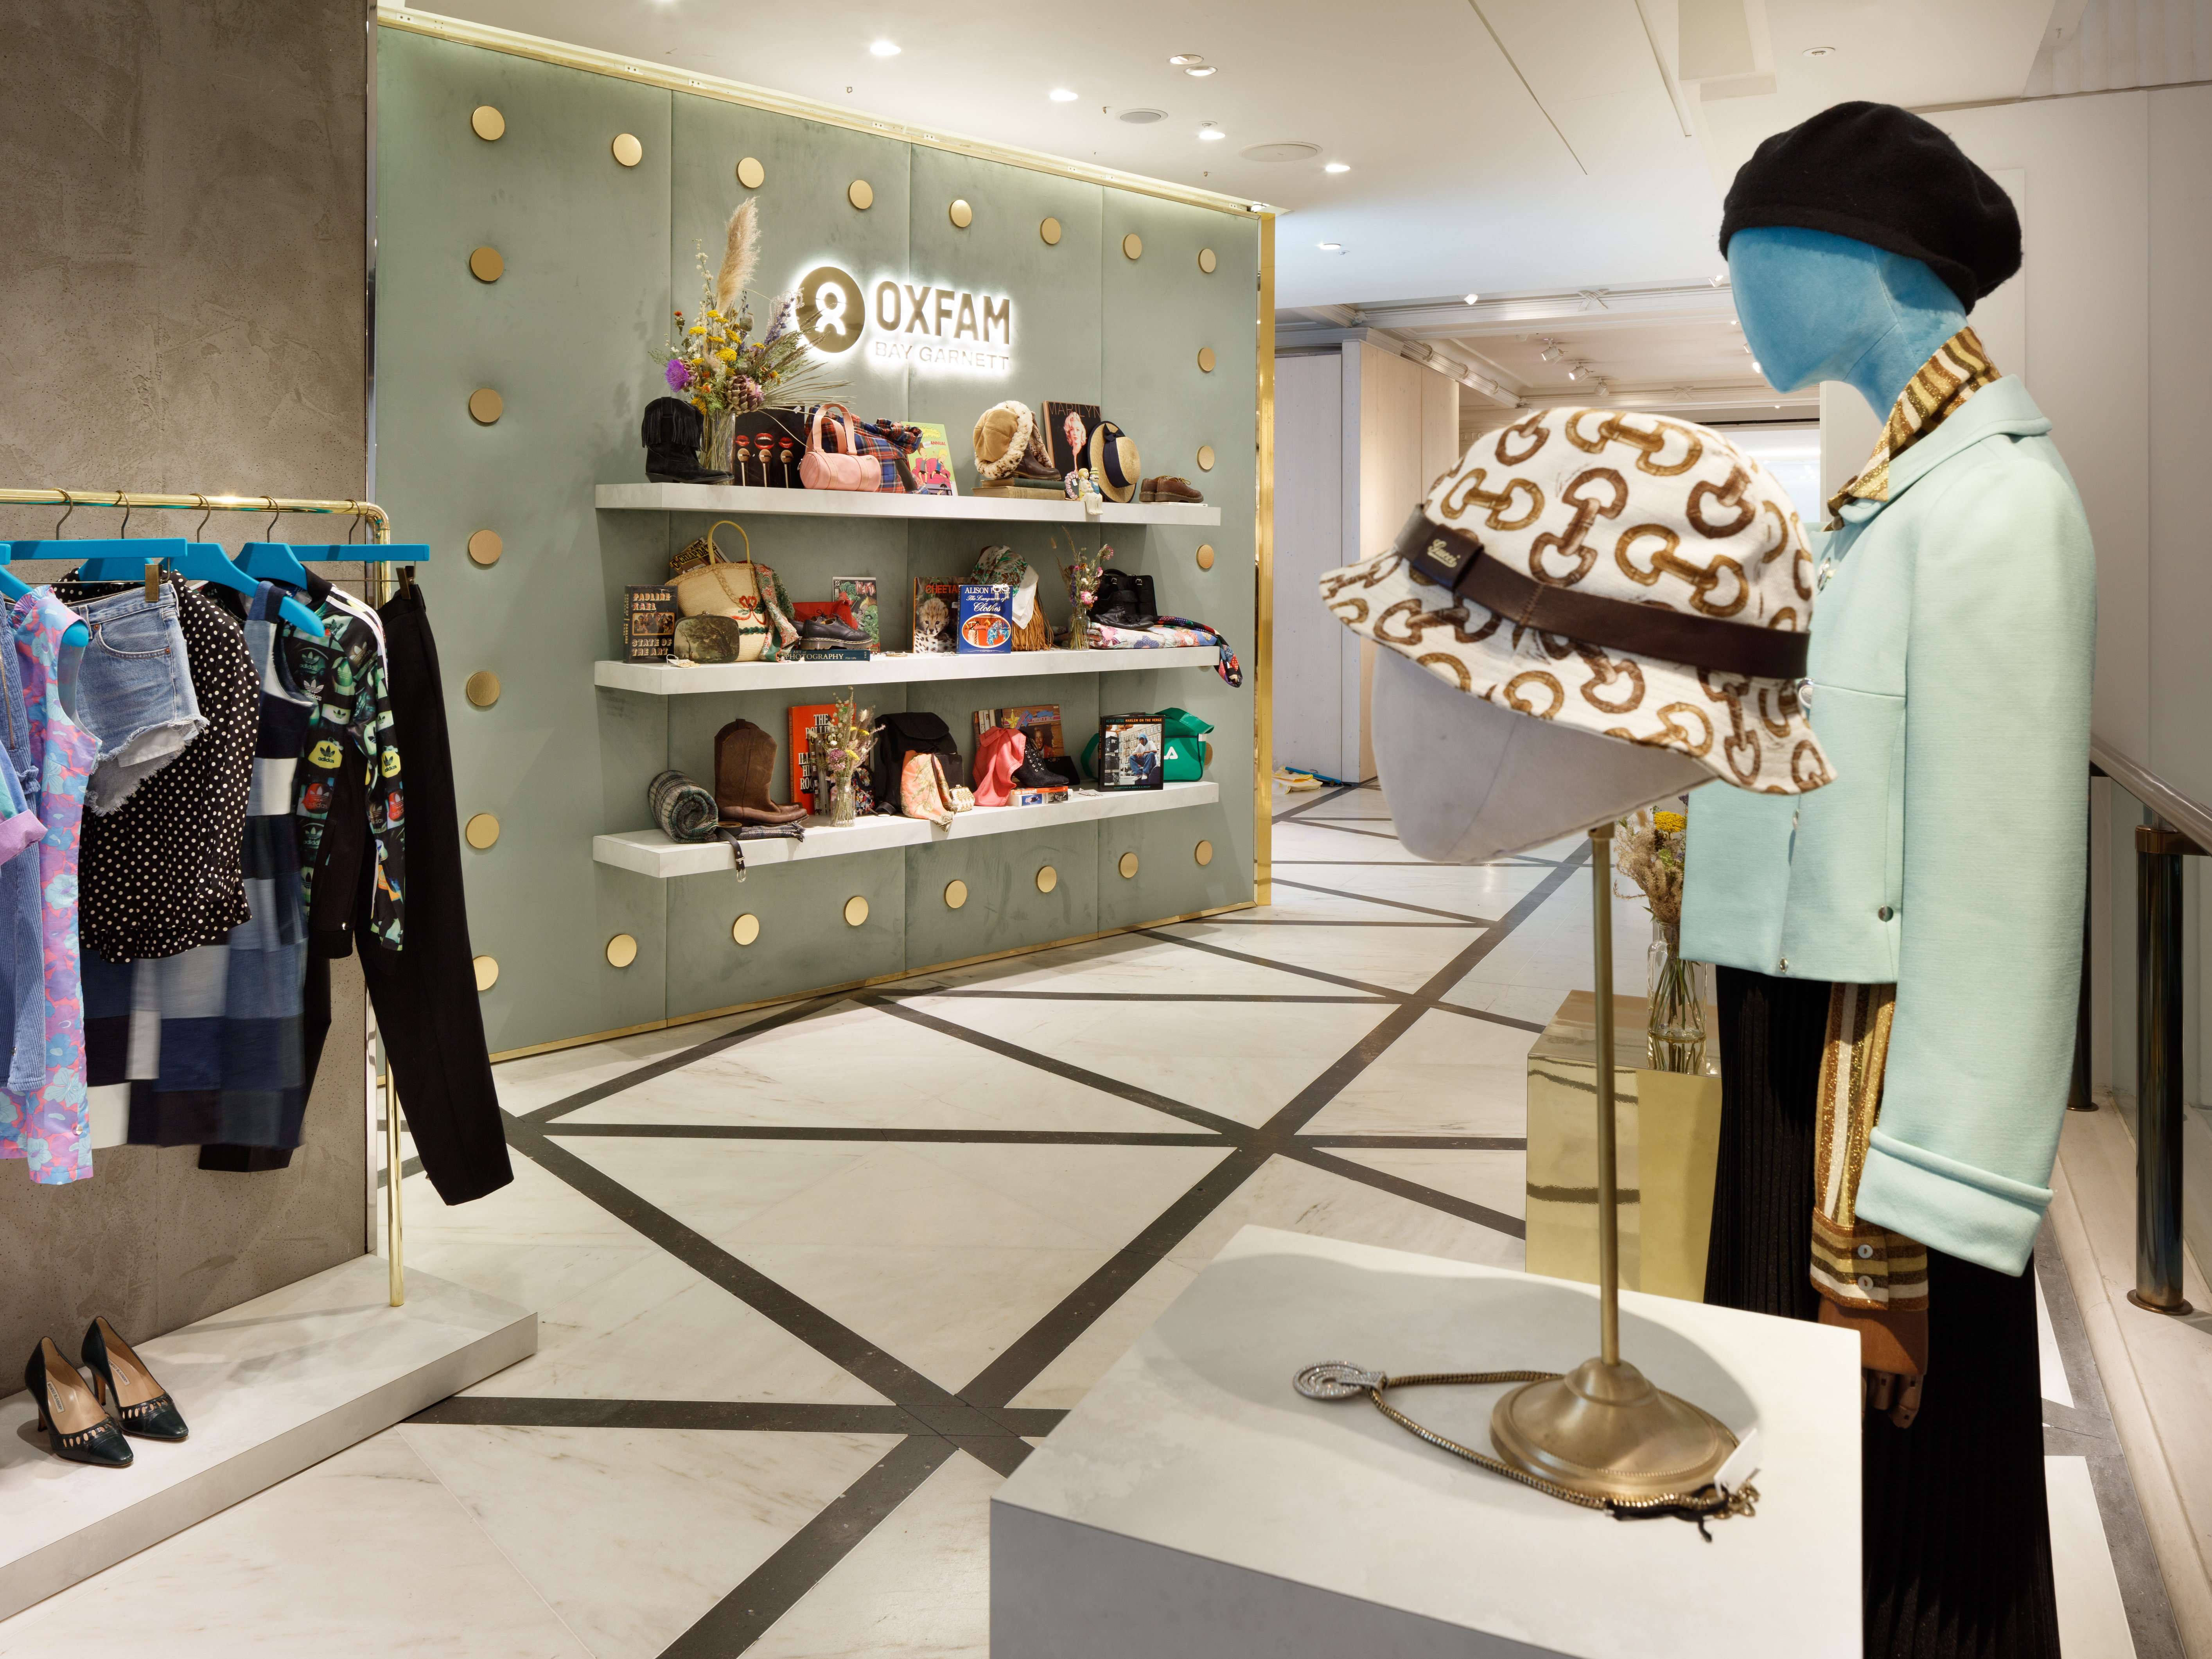 The Oxfam x Bay Garnett for Selfridges pop-up shop, which opened on Sept. 7.